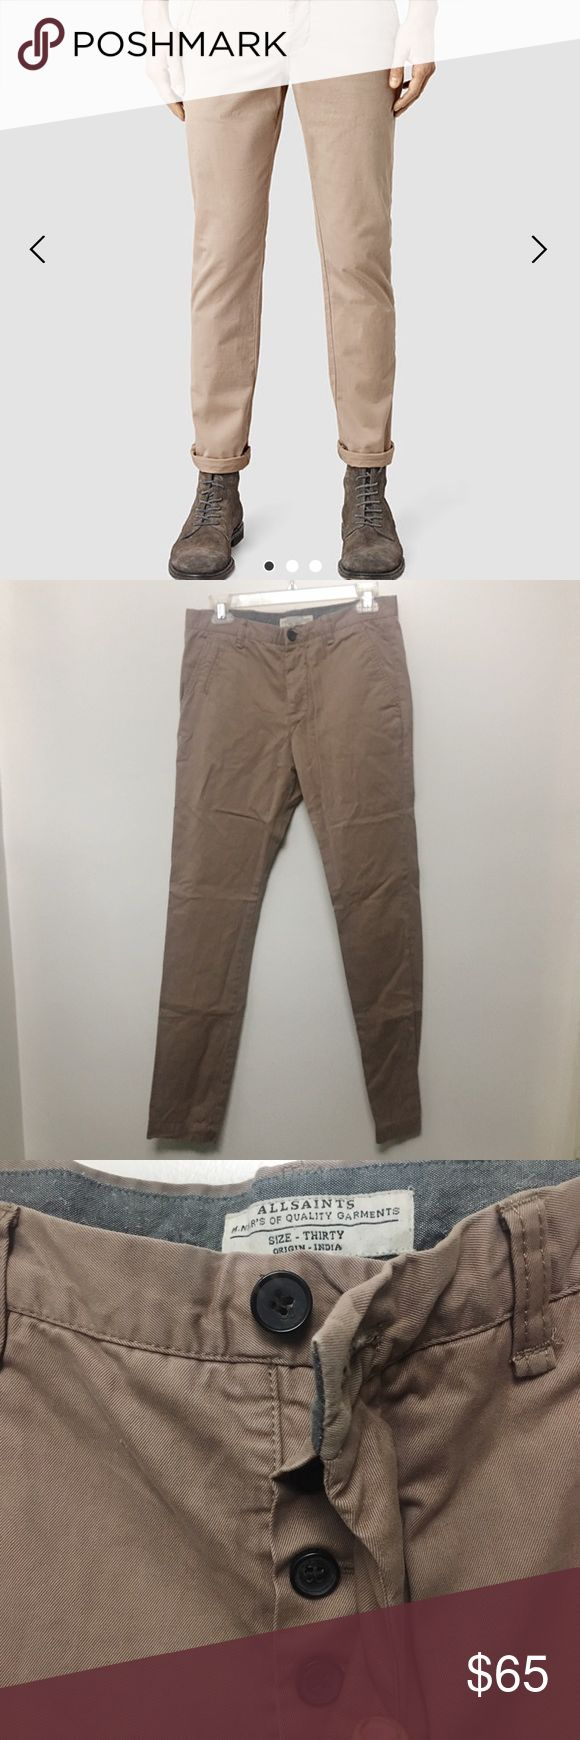 All saints chino pants size 30 Men's Brand new without tags  pair of All Saint chino pants color dusty pink. size 30x32 All Saints Pants Chinos & Khakis